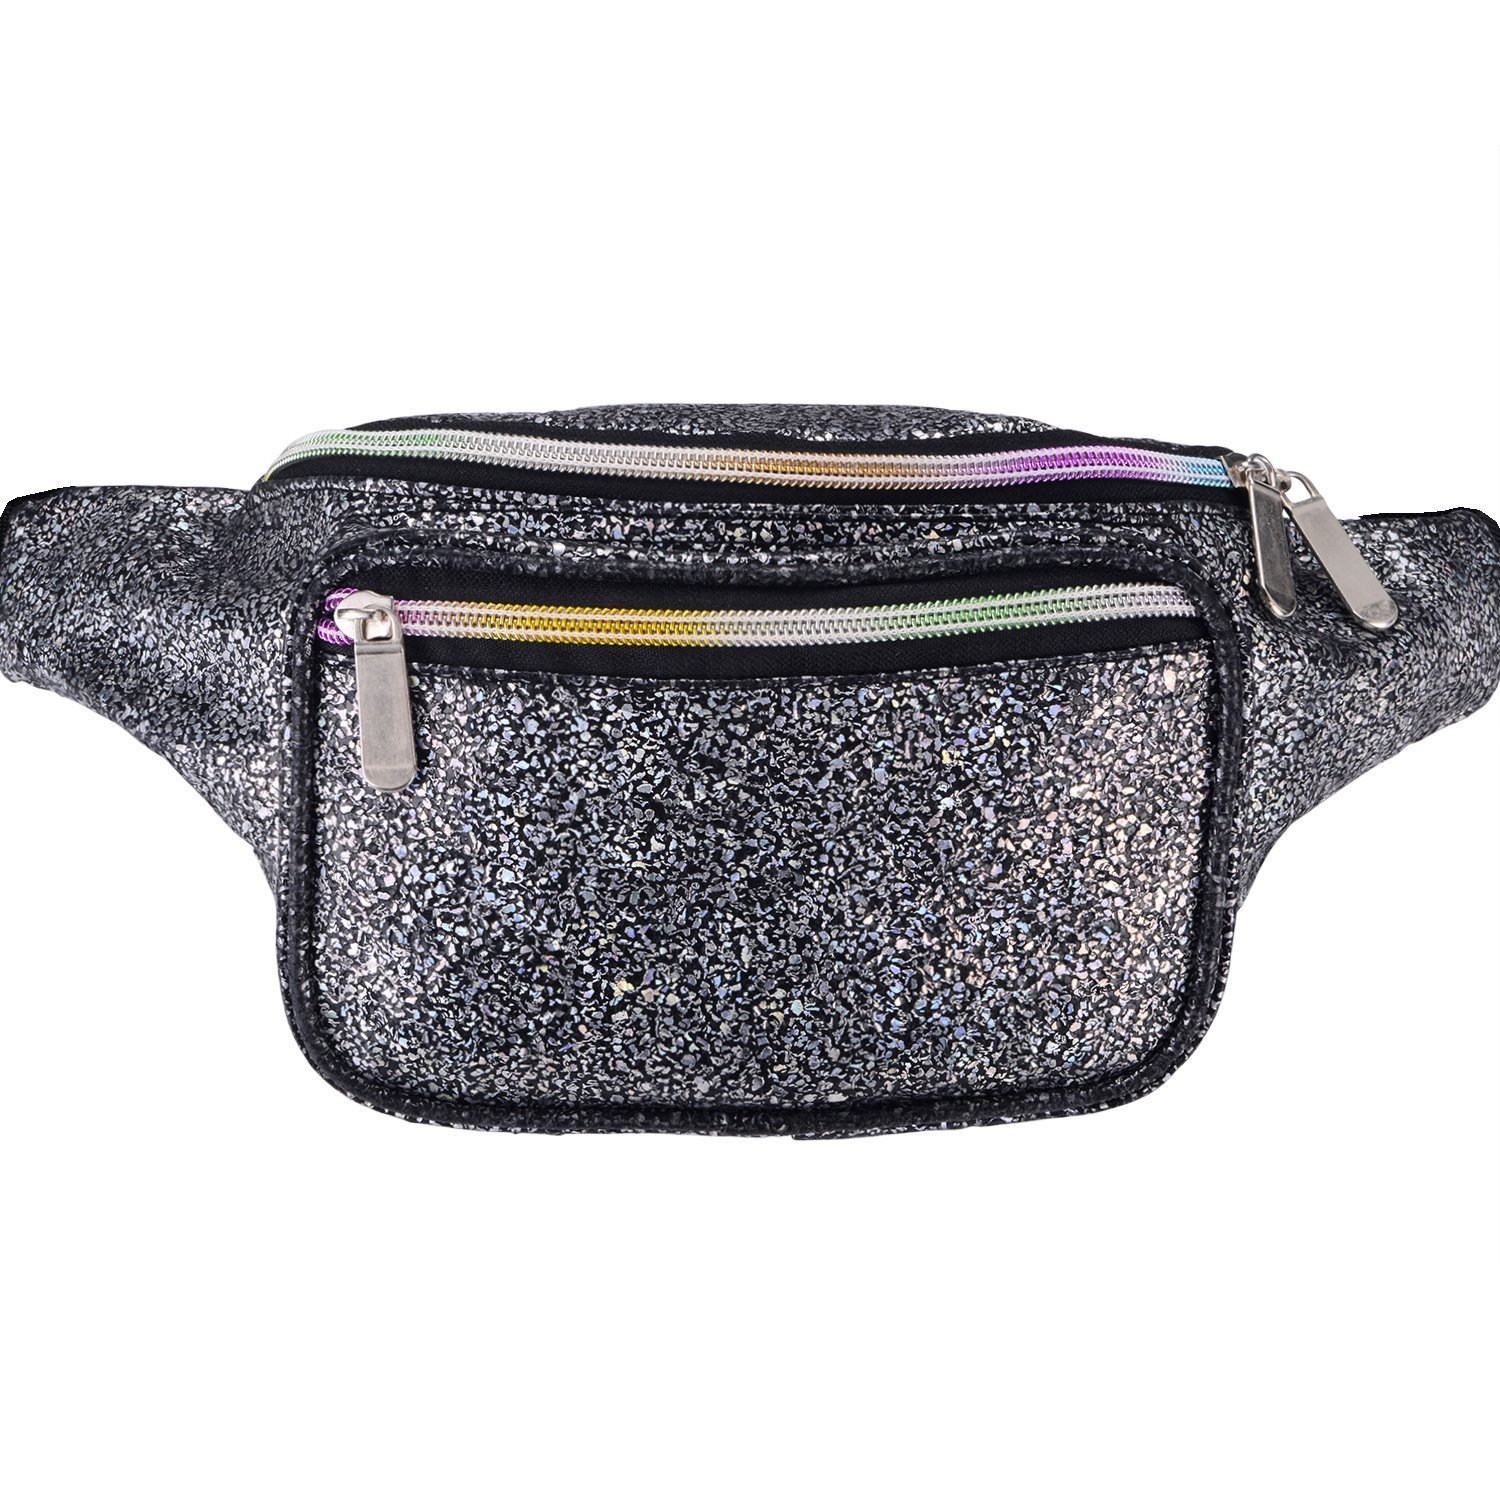 Miracu Holographic Neon Fanny Packs for Women, Fashion Cute Fanny Pack for Rave, Festival Festival (Black) M029-SS pack-black